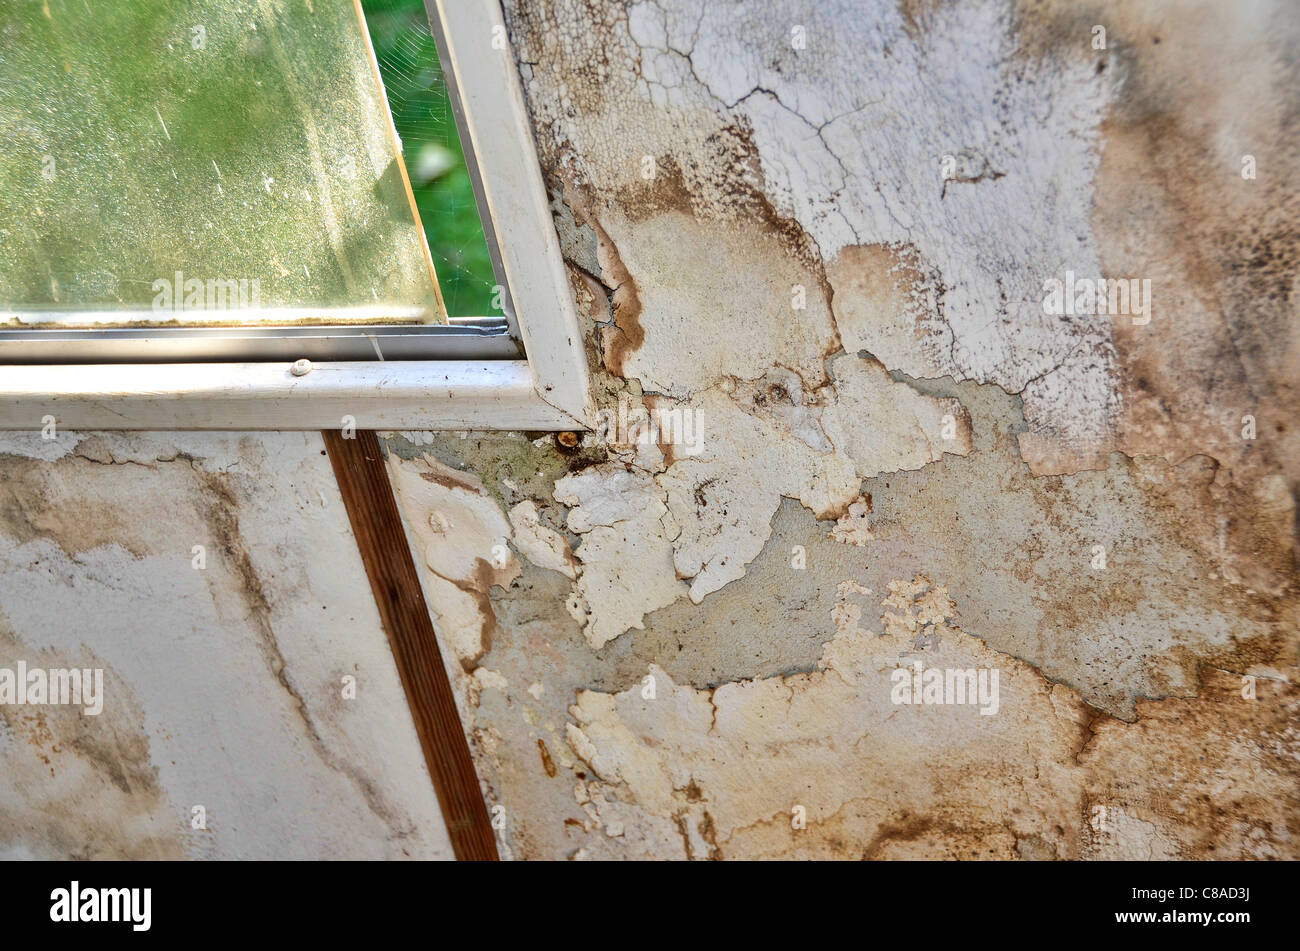 Wall with mildew, leaking window - Stock Image